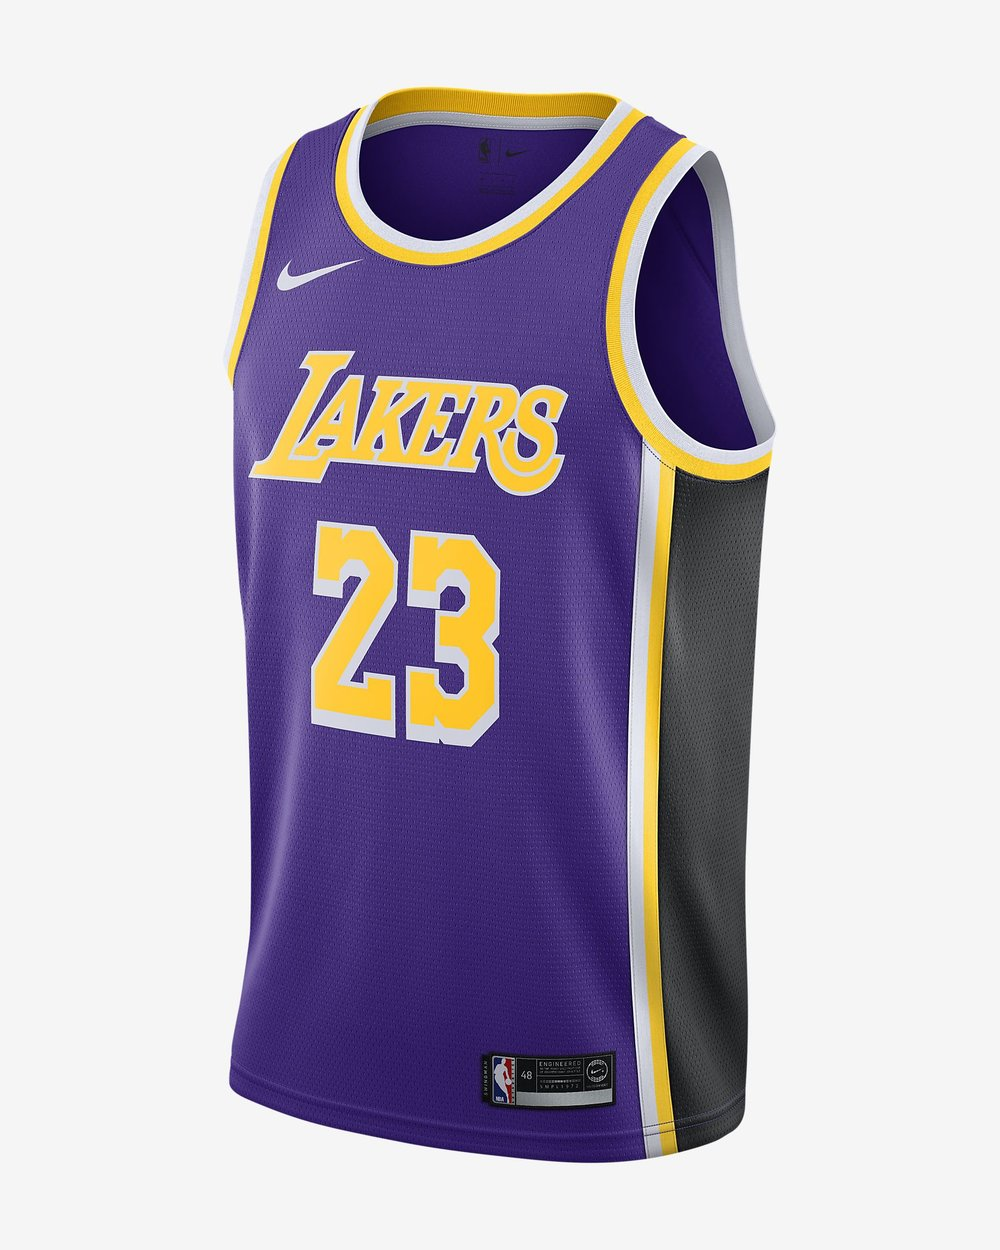 4a7c3d3077a Now Available  Nike Lakers